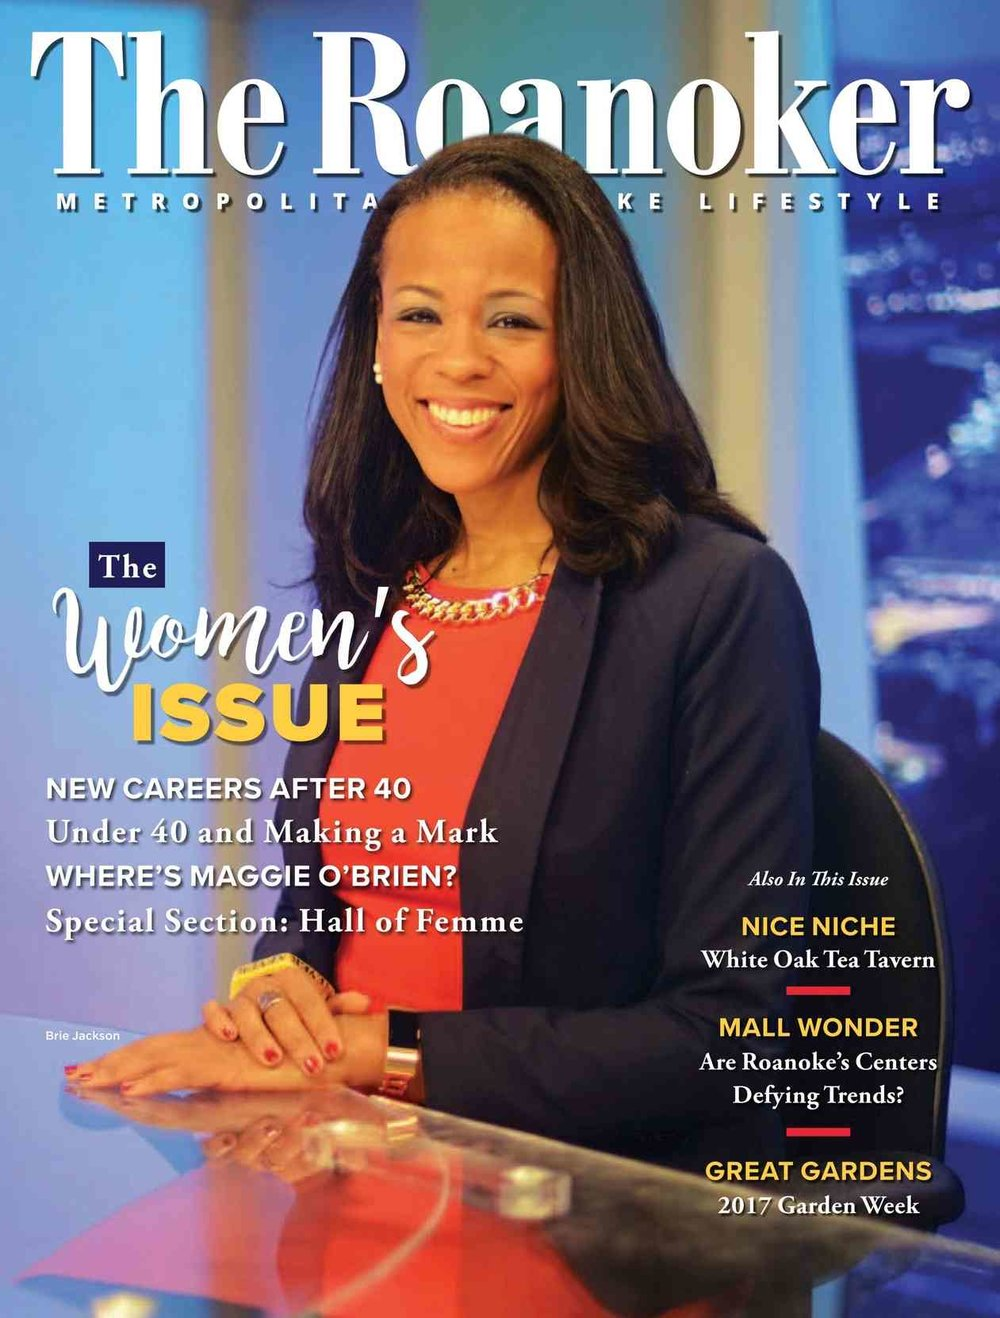 roanoke magazine cover april 2017 - companion home care of roanoke va